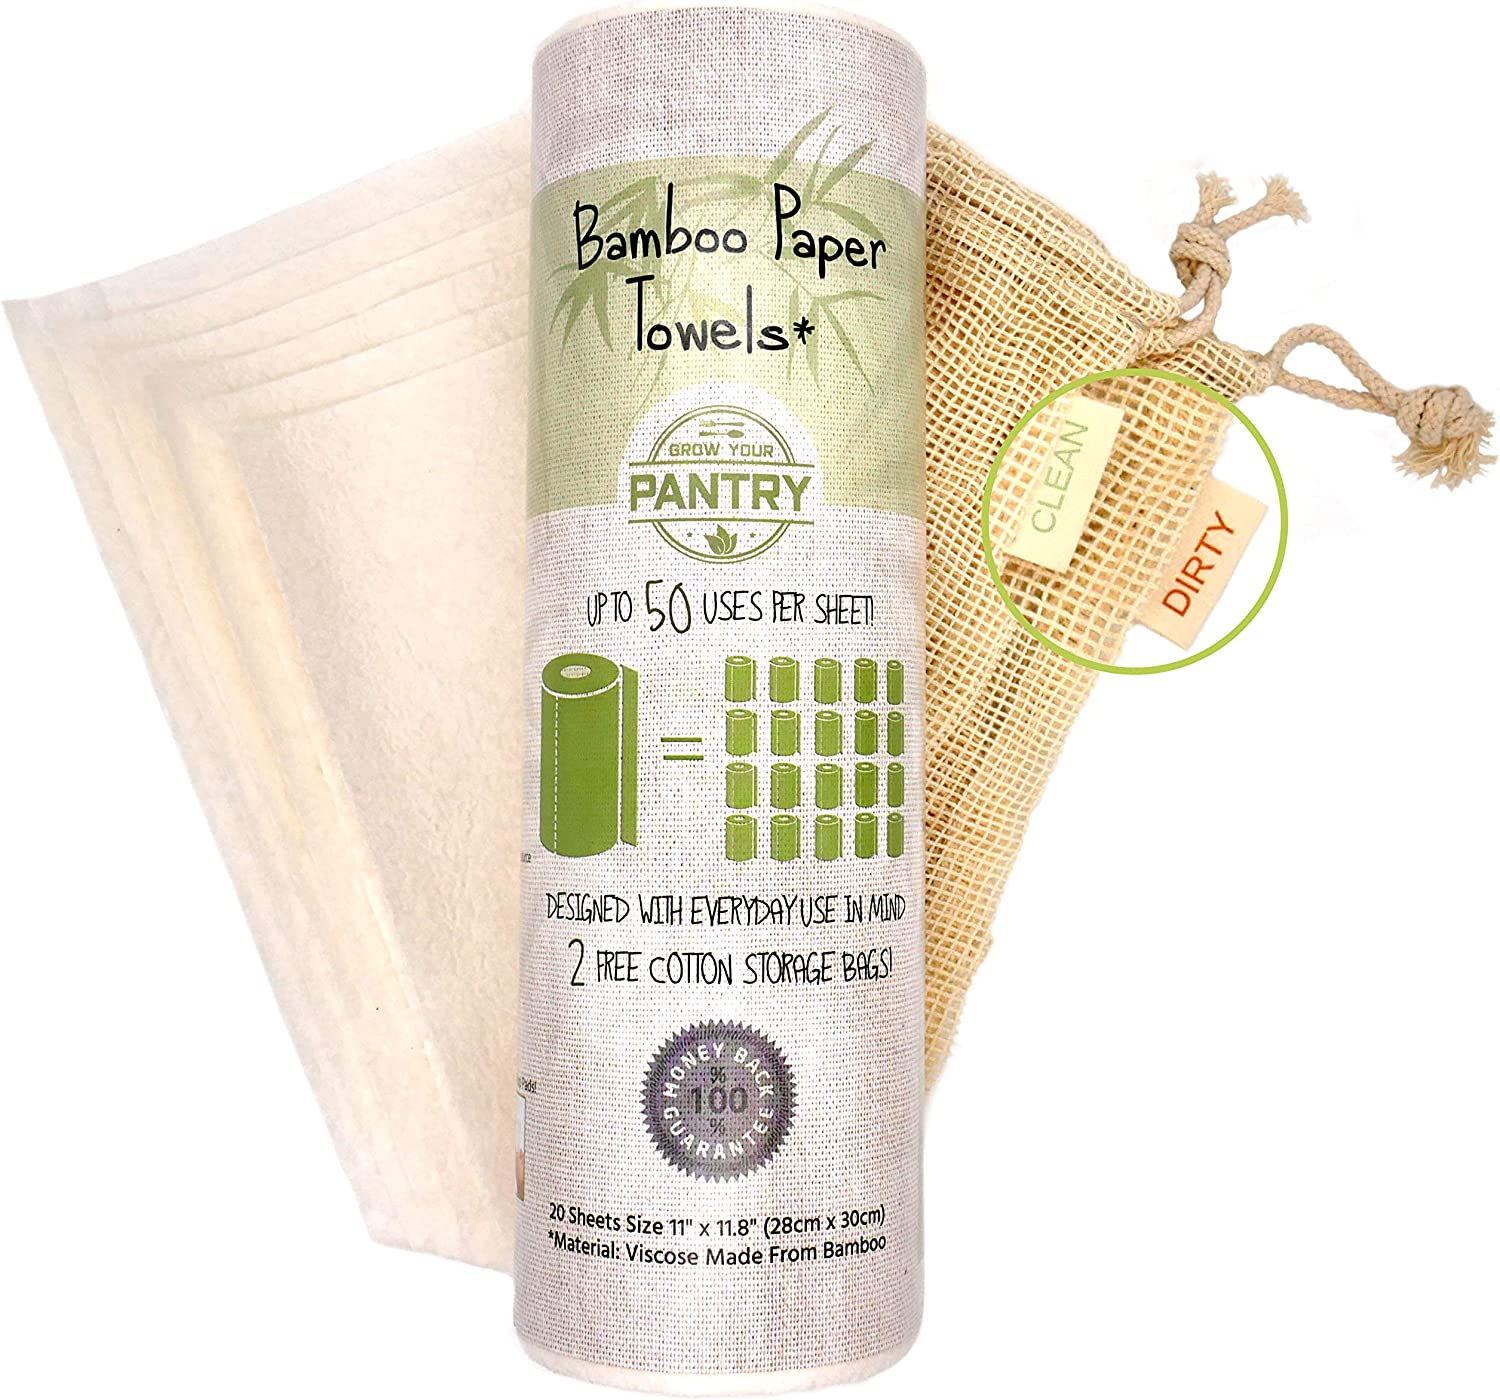 Bamboo Paper Towels From Grow Your Pantry 1 Pack - Eco Friendly, Machine Washable & Reusable for Multipurpose - Comes with TWO Cotton Storage Bags